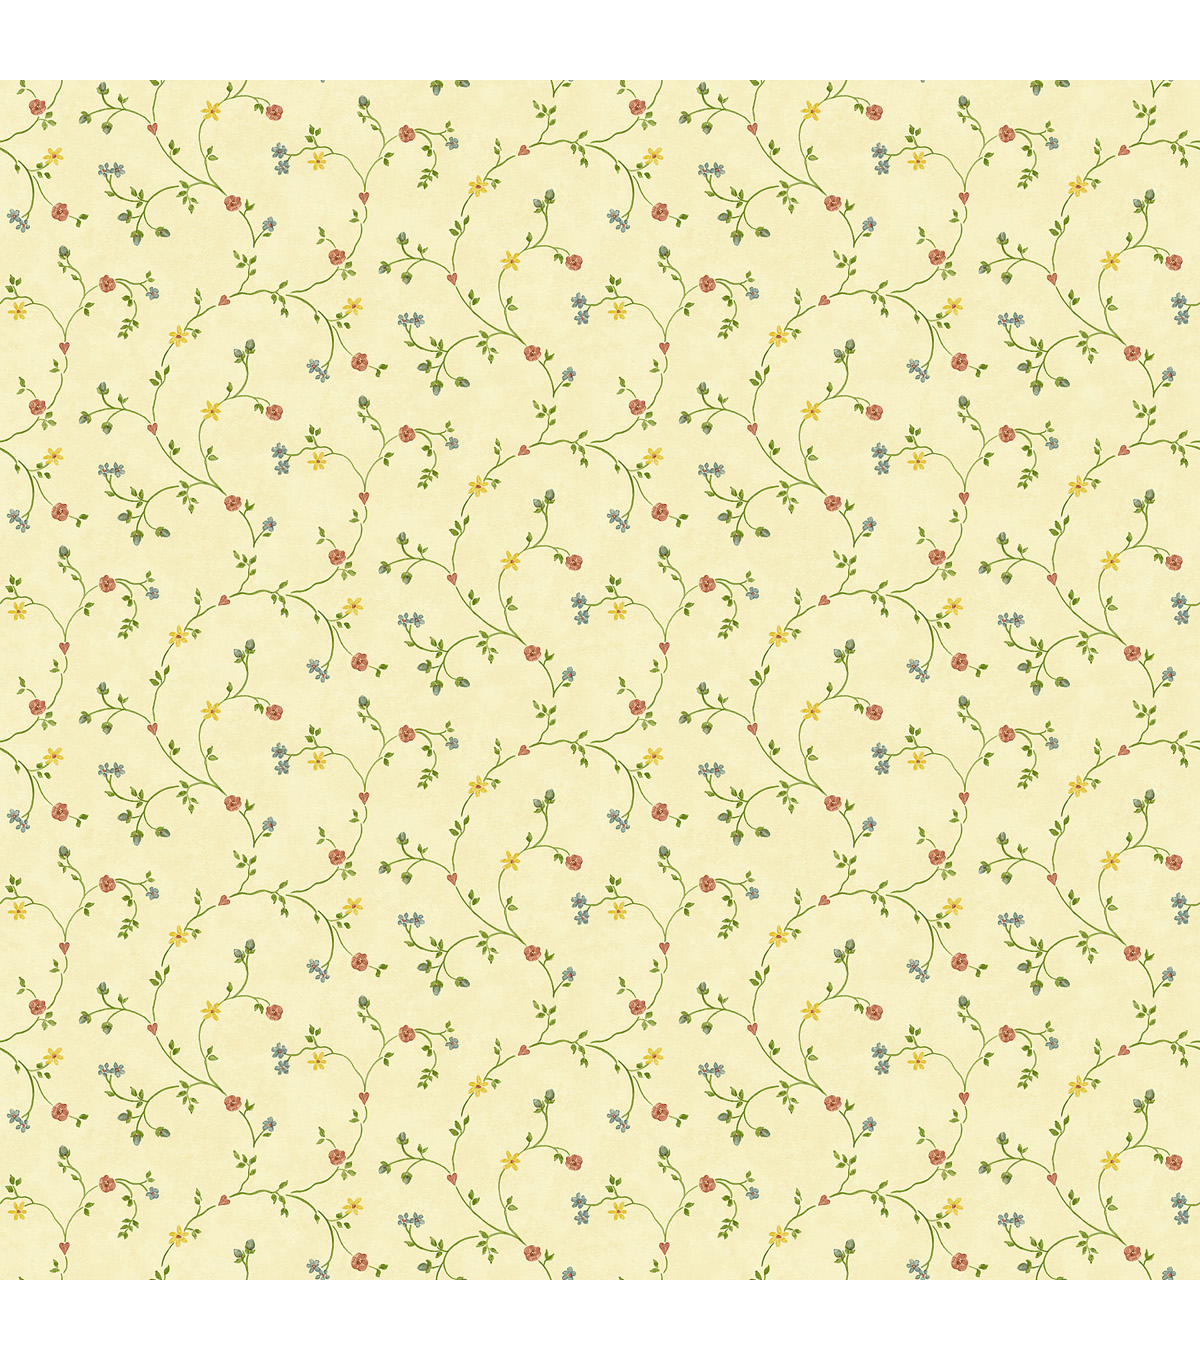 Nara Beige Floral Trail Wallpaper Sample